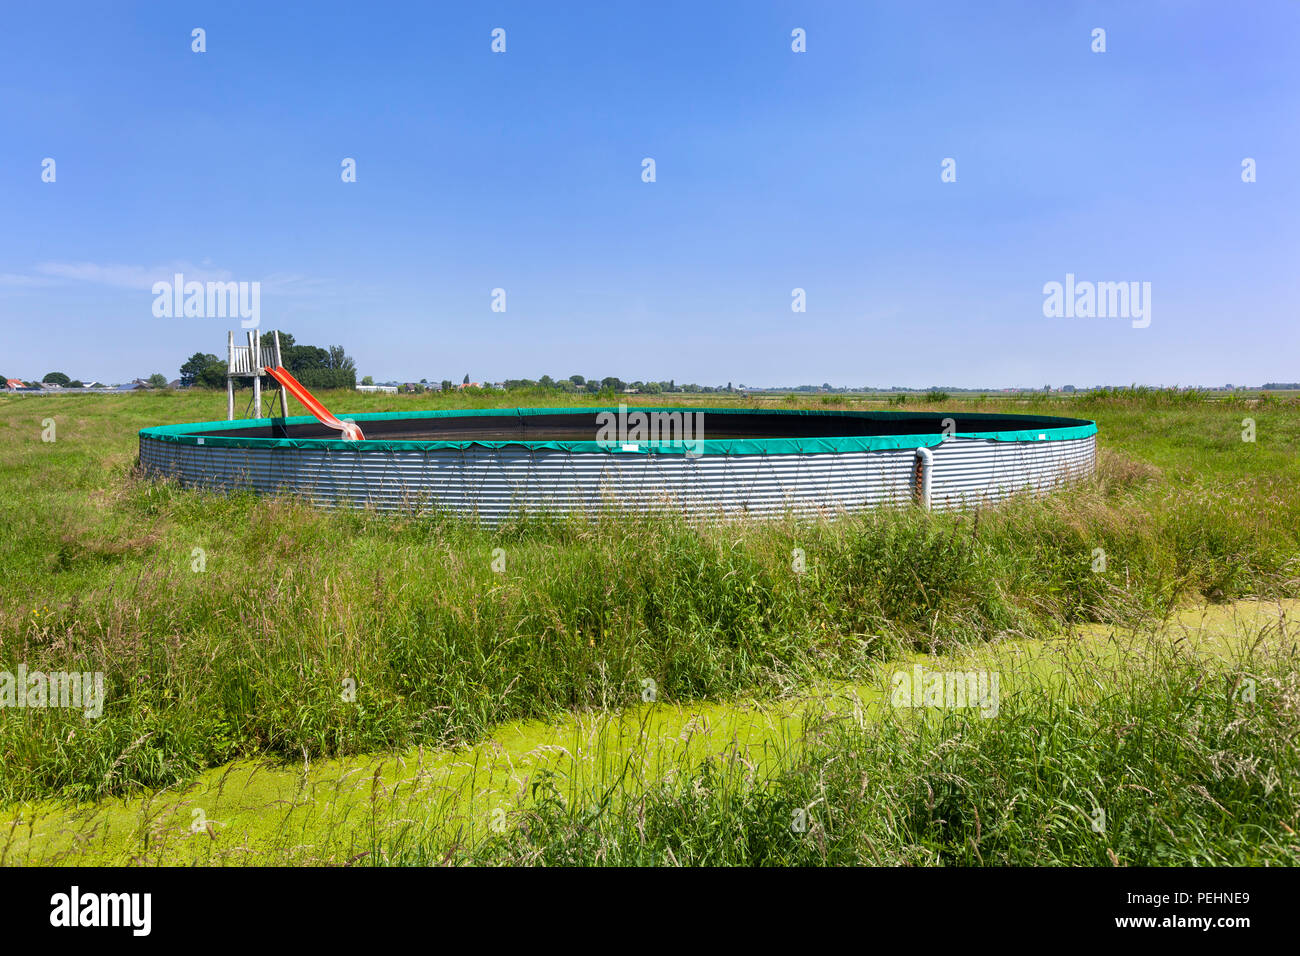 Vintage Swimming Pool Made Of An Water Storage Reservoir With Orange Slide  In The Countryside Pastures In The Netherlands